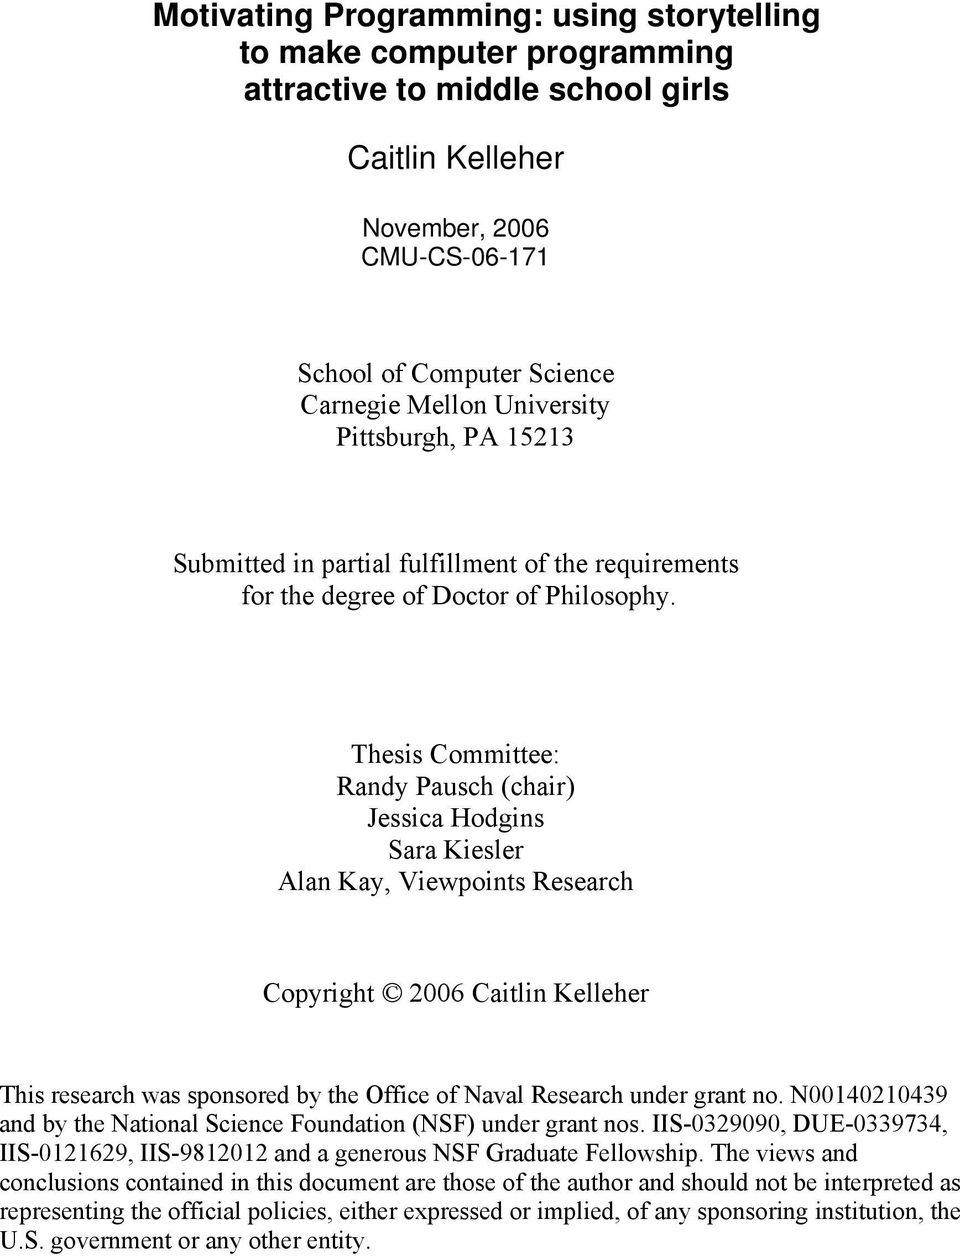 Thesis Committee: Randy Pausch (chair) Jessica Hodgins Sara Kiesler Alan Kay, Viewpoints Research Copyright 2006 Caitlin Kelleher This research was sponsored by the Office of Naval Research under